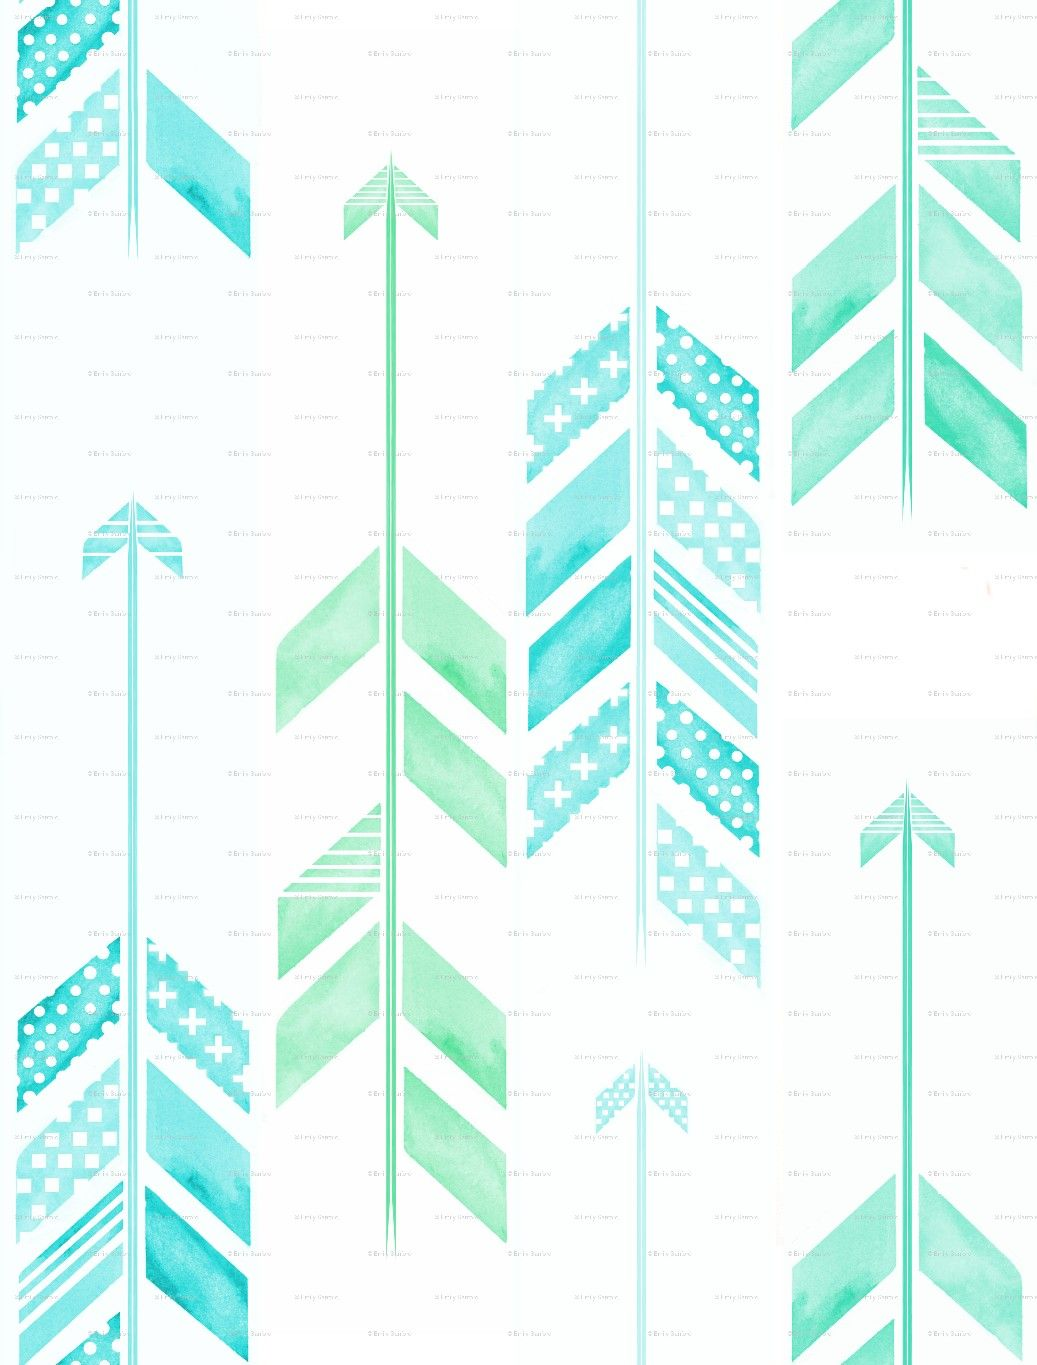 Pin by Cassy Chester on Pared in 2020 | Mint green ...